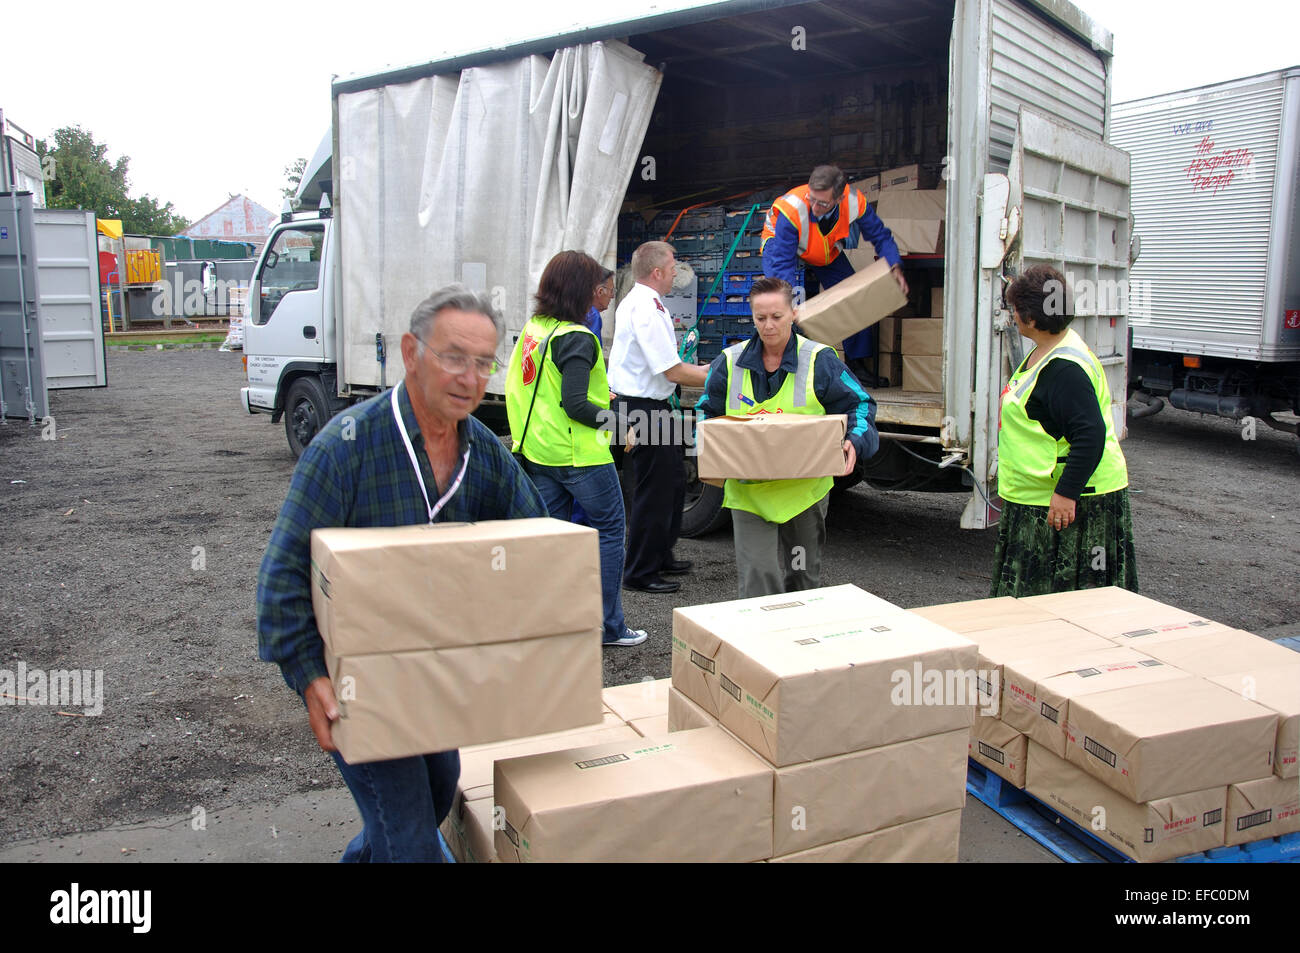 Volunteers unload food for victims of the 6.4 earthquake in Christchurch, South Island, New Zealand, 22-2-2011 - Stock Image